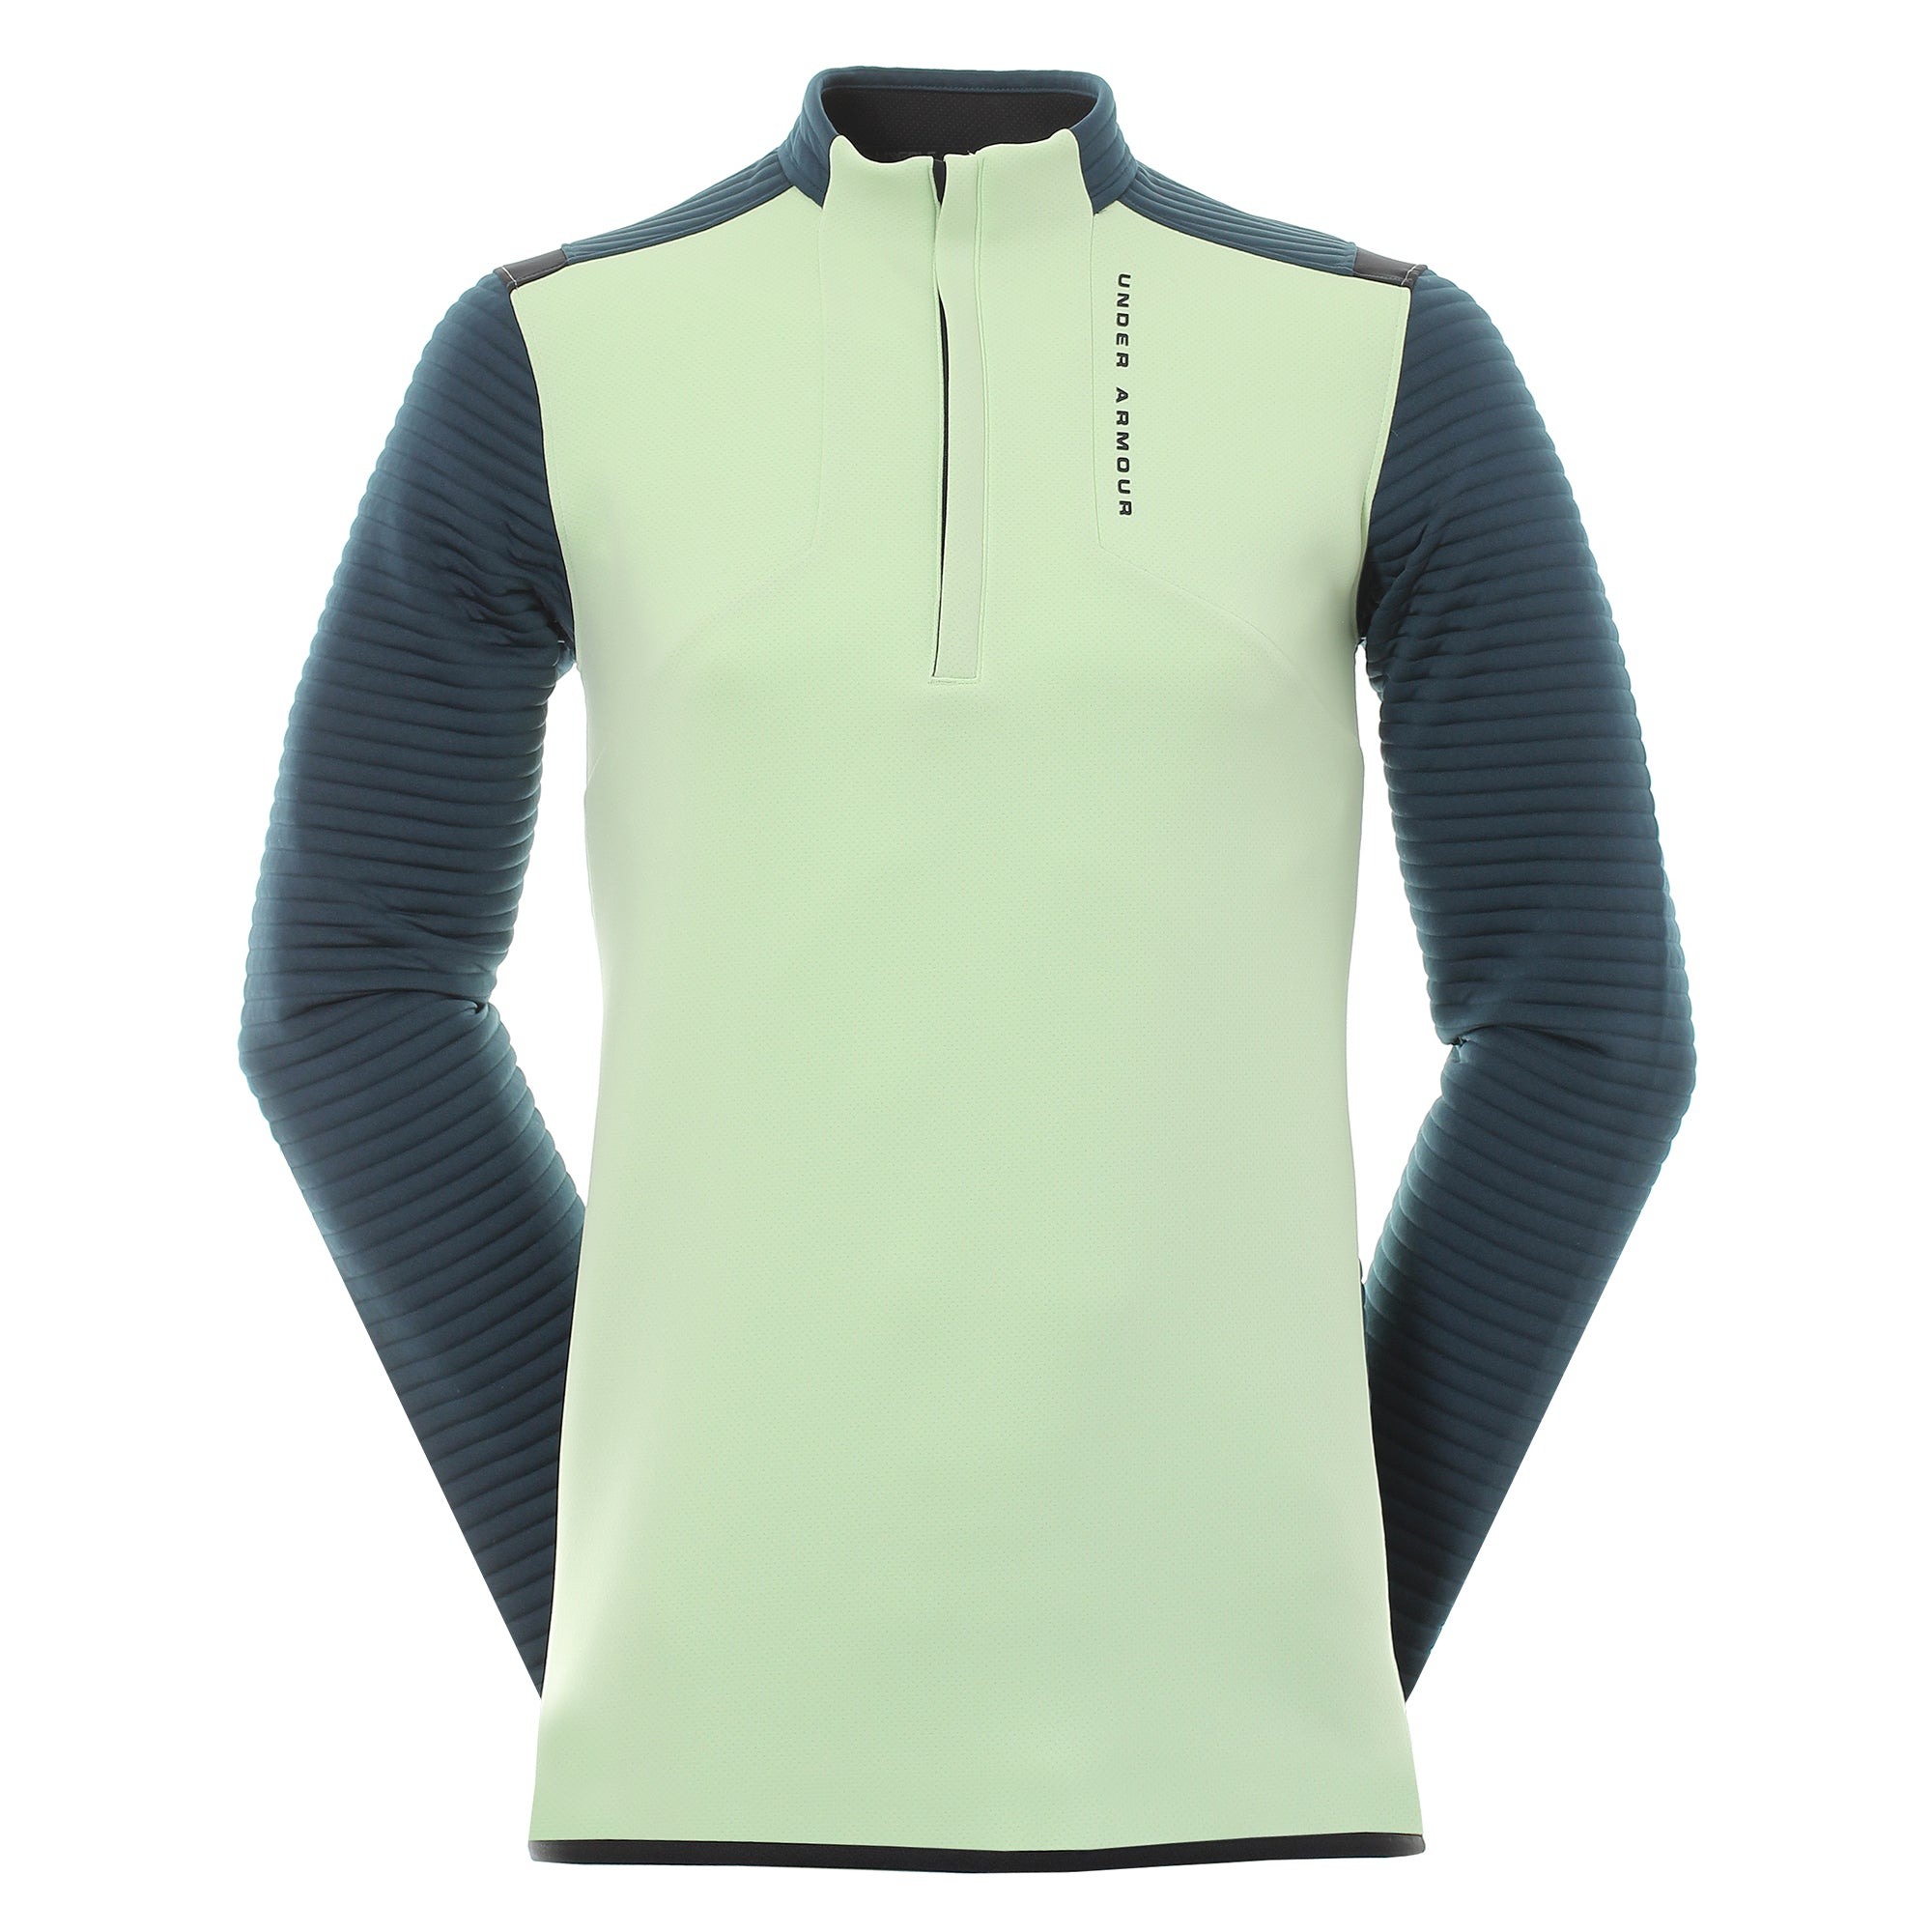 Under Armour Golf Storm Daytona 1 2 Zip 1317341